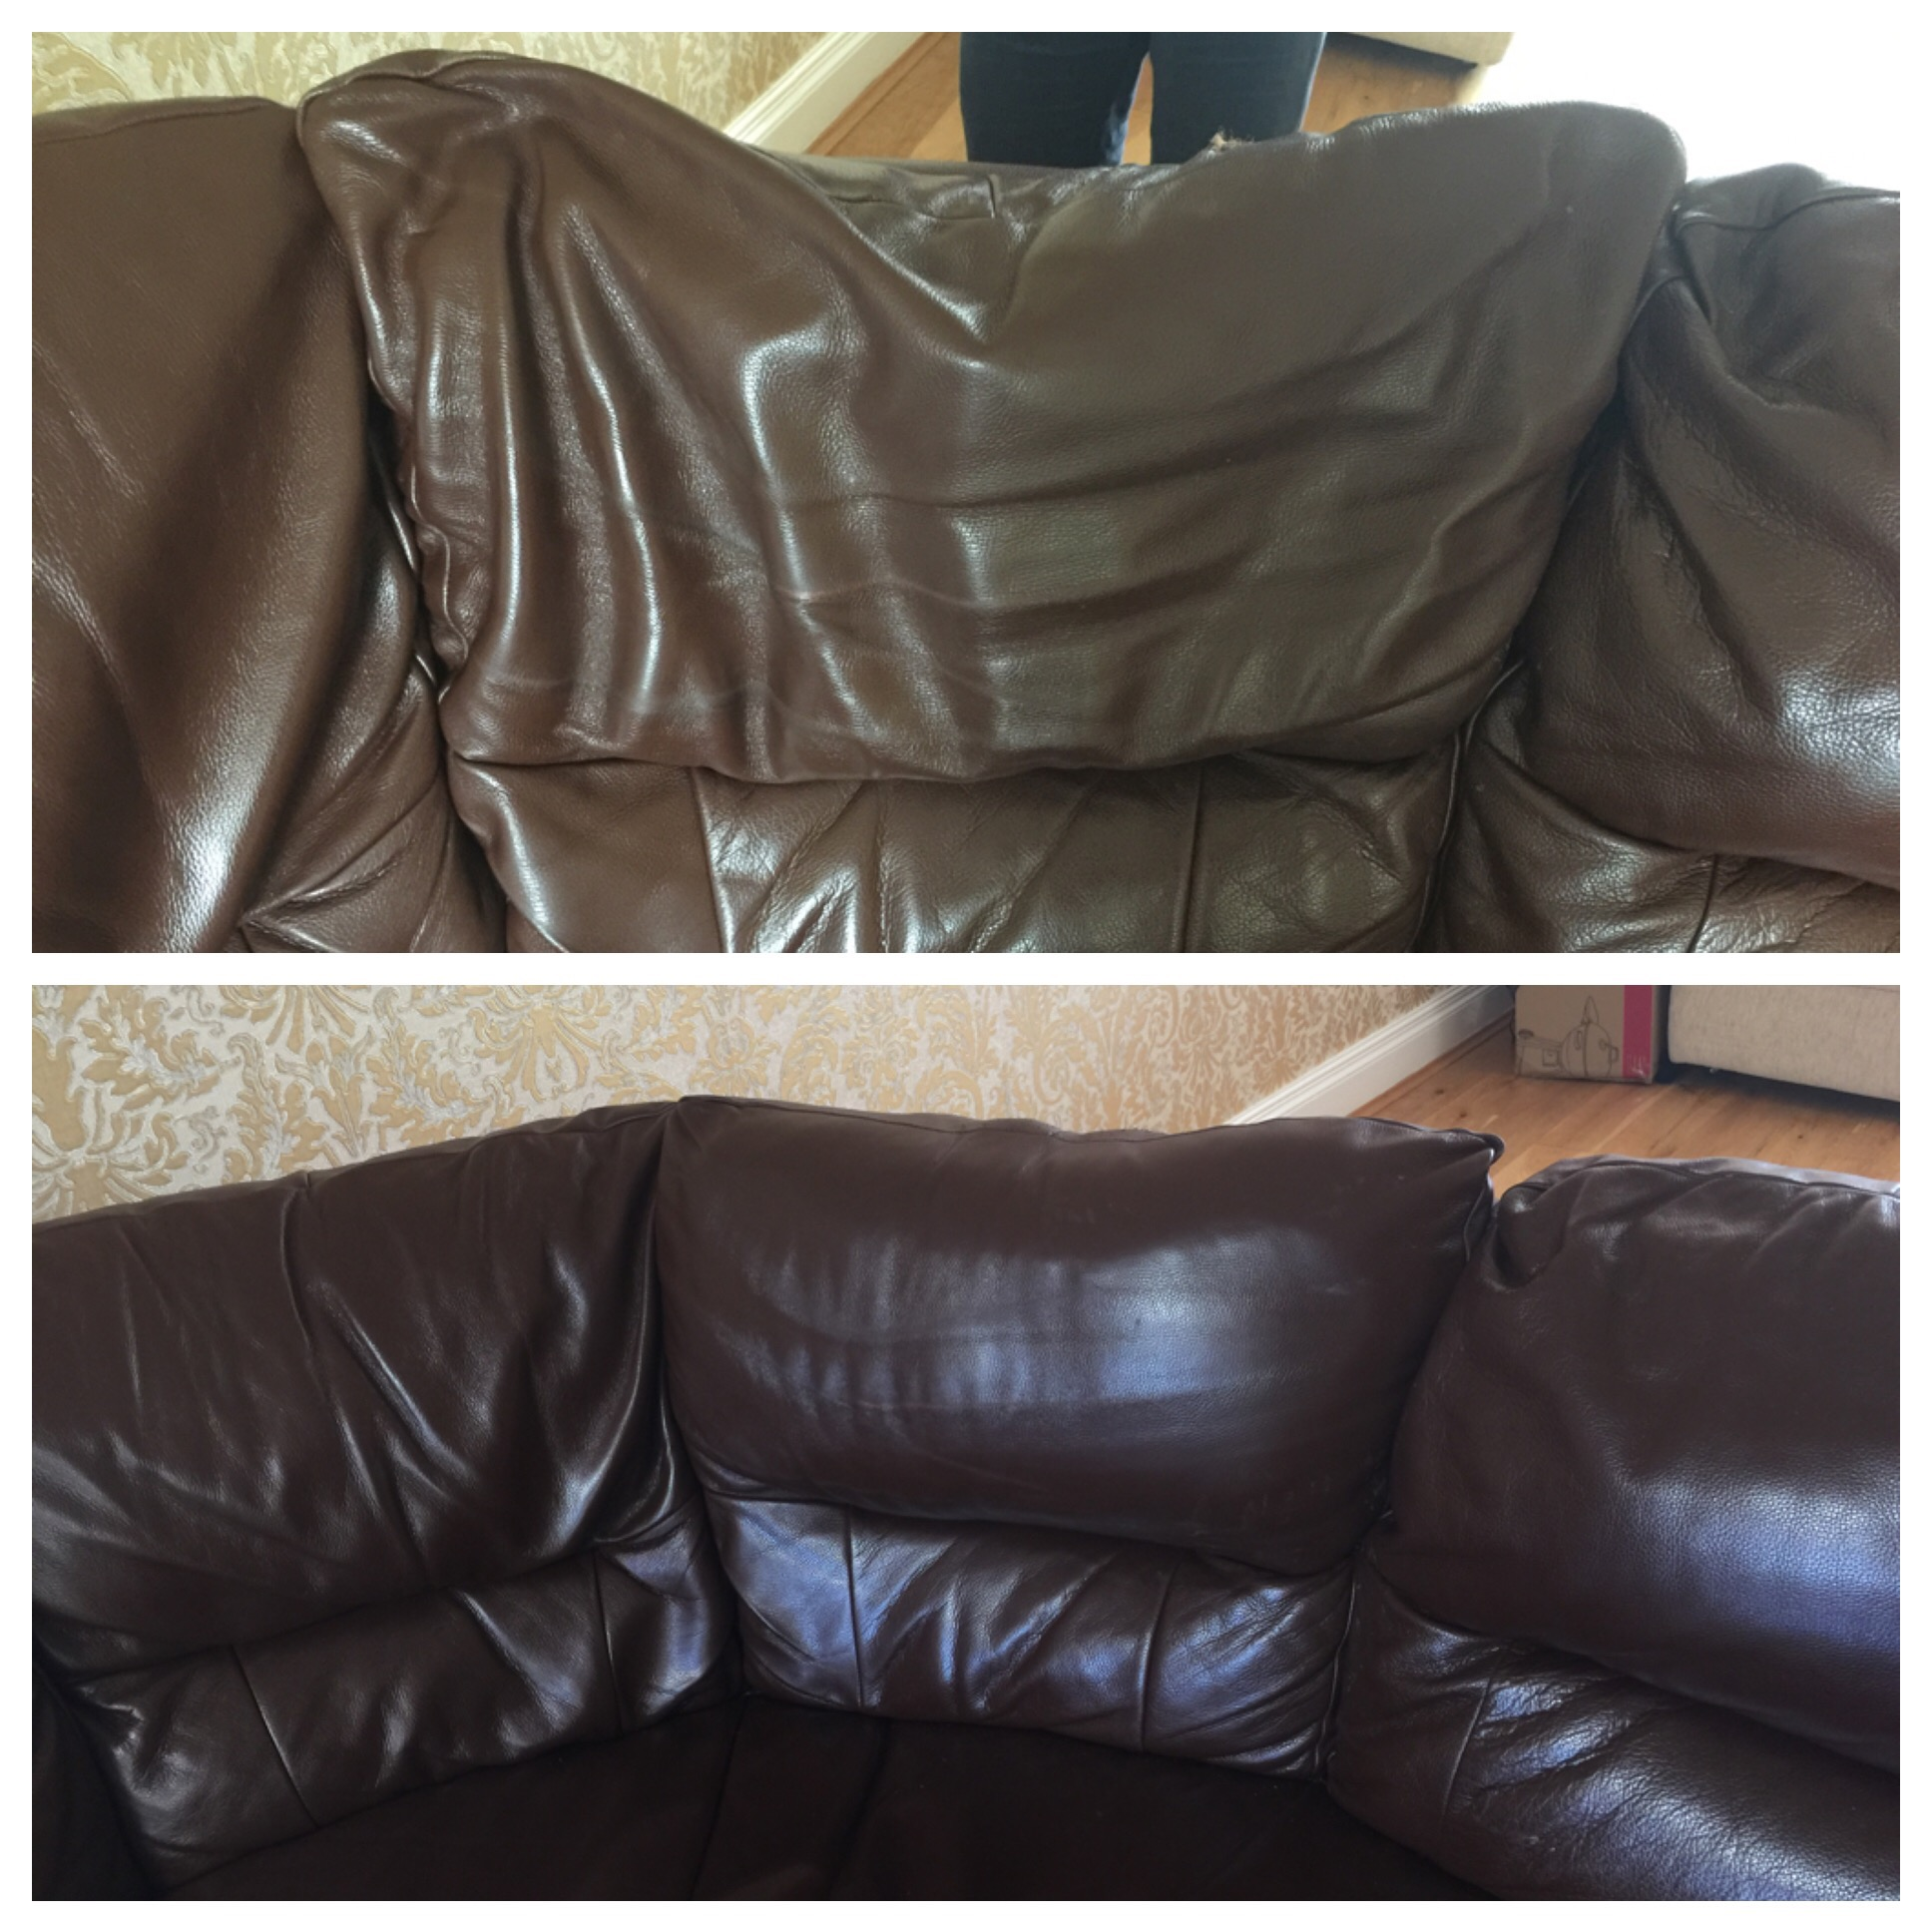 restoring leather sofa high point florence sc re pading restore cleaning